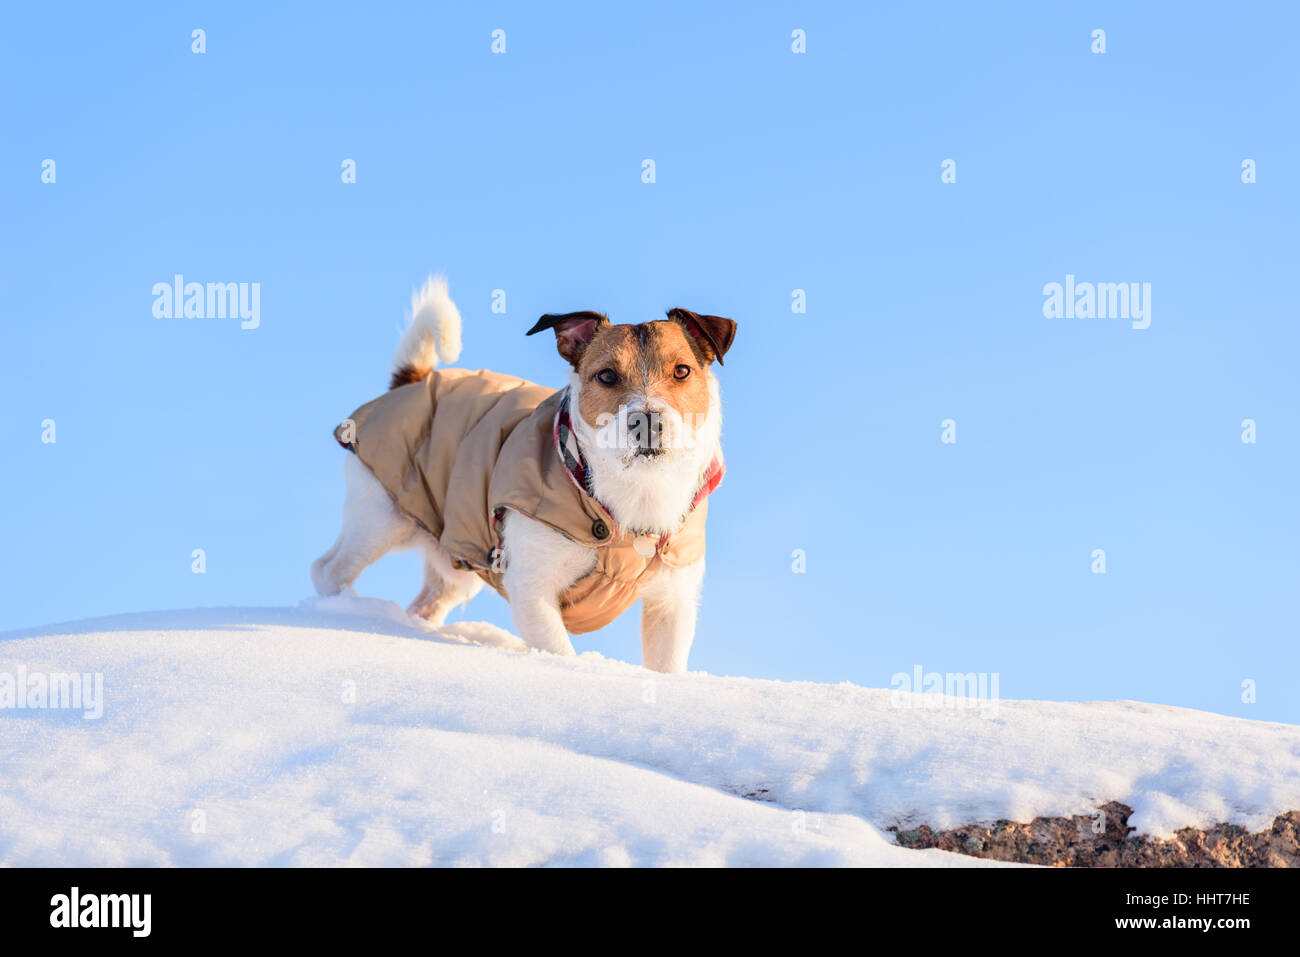 Dog walking on top of rock covered with snow and blue sky at background - Stock Image